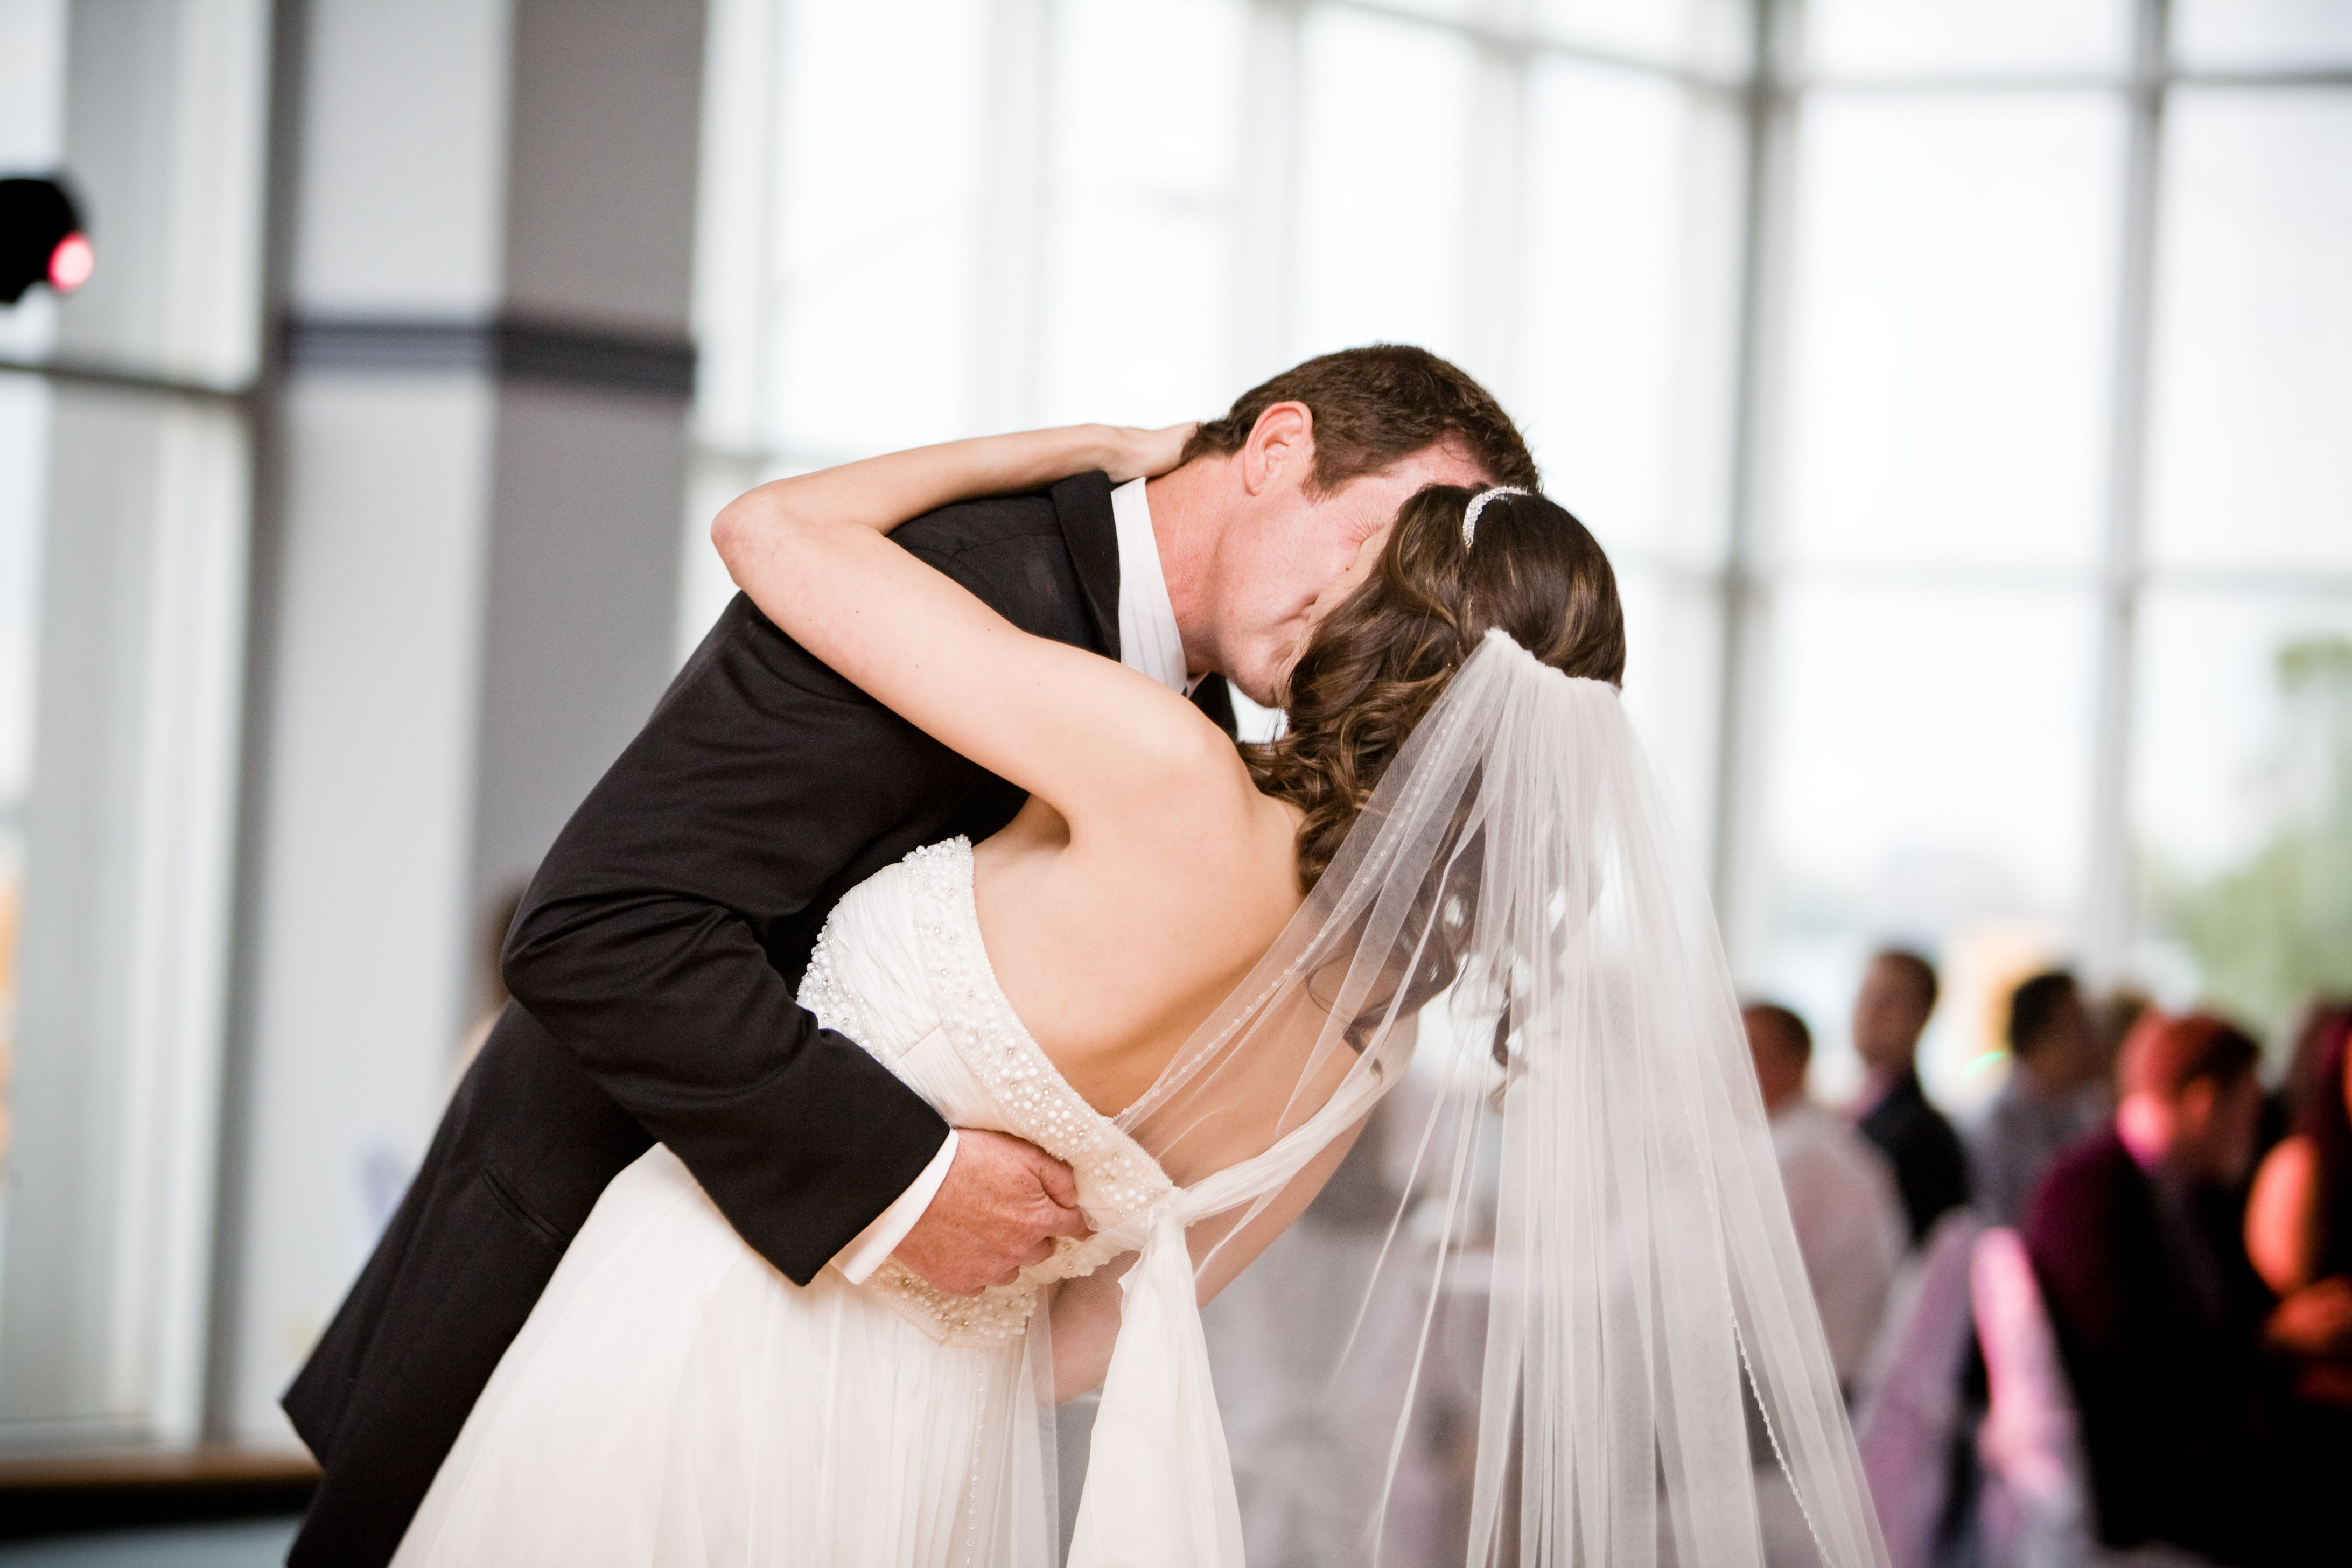 Top 10 First Dance Wedding Songs According To Spotify Cherryocean